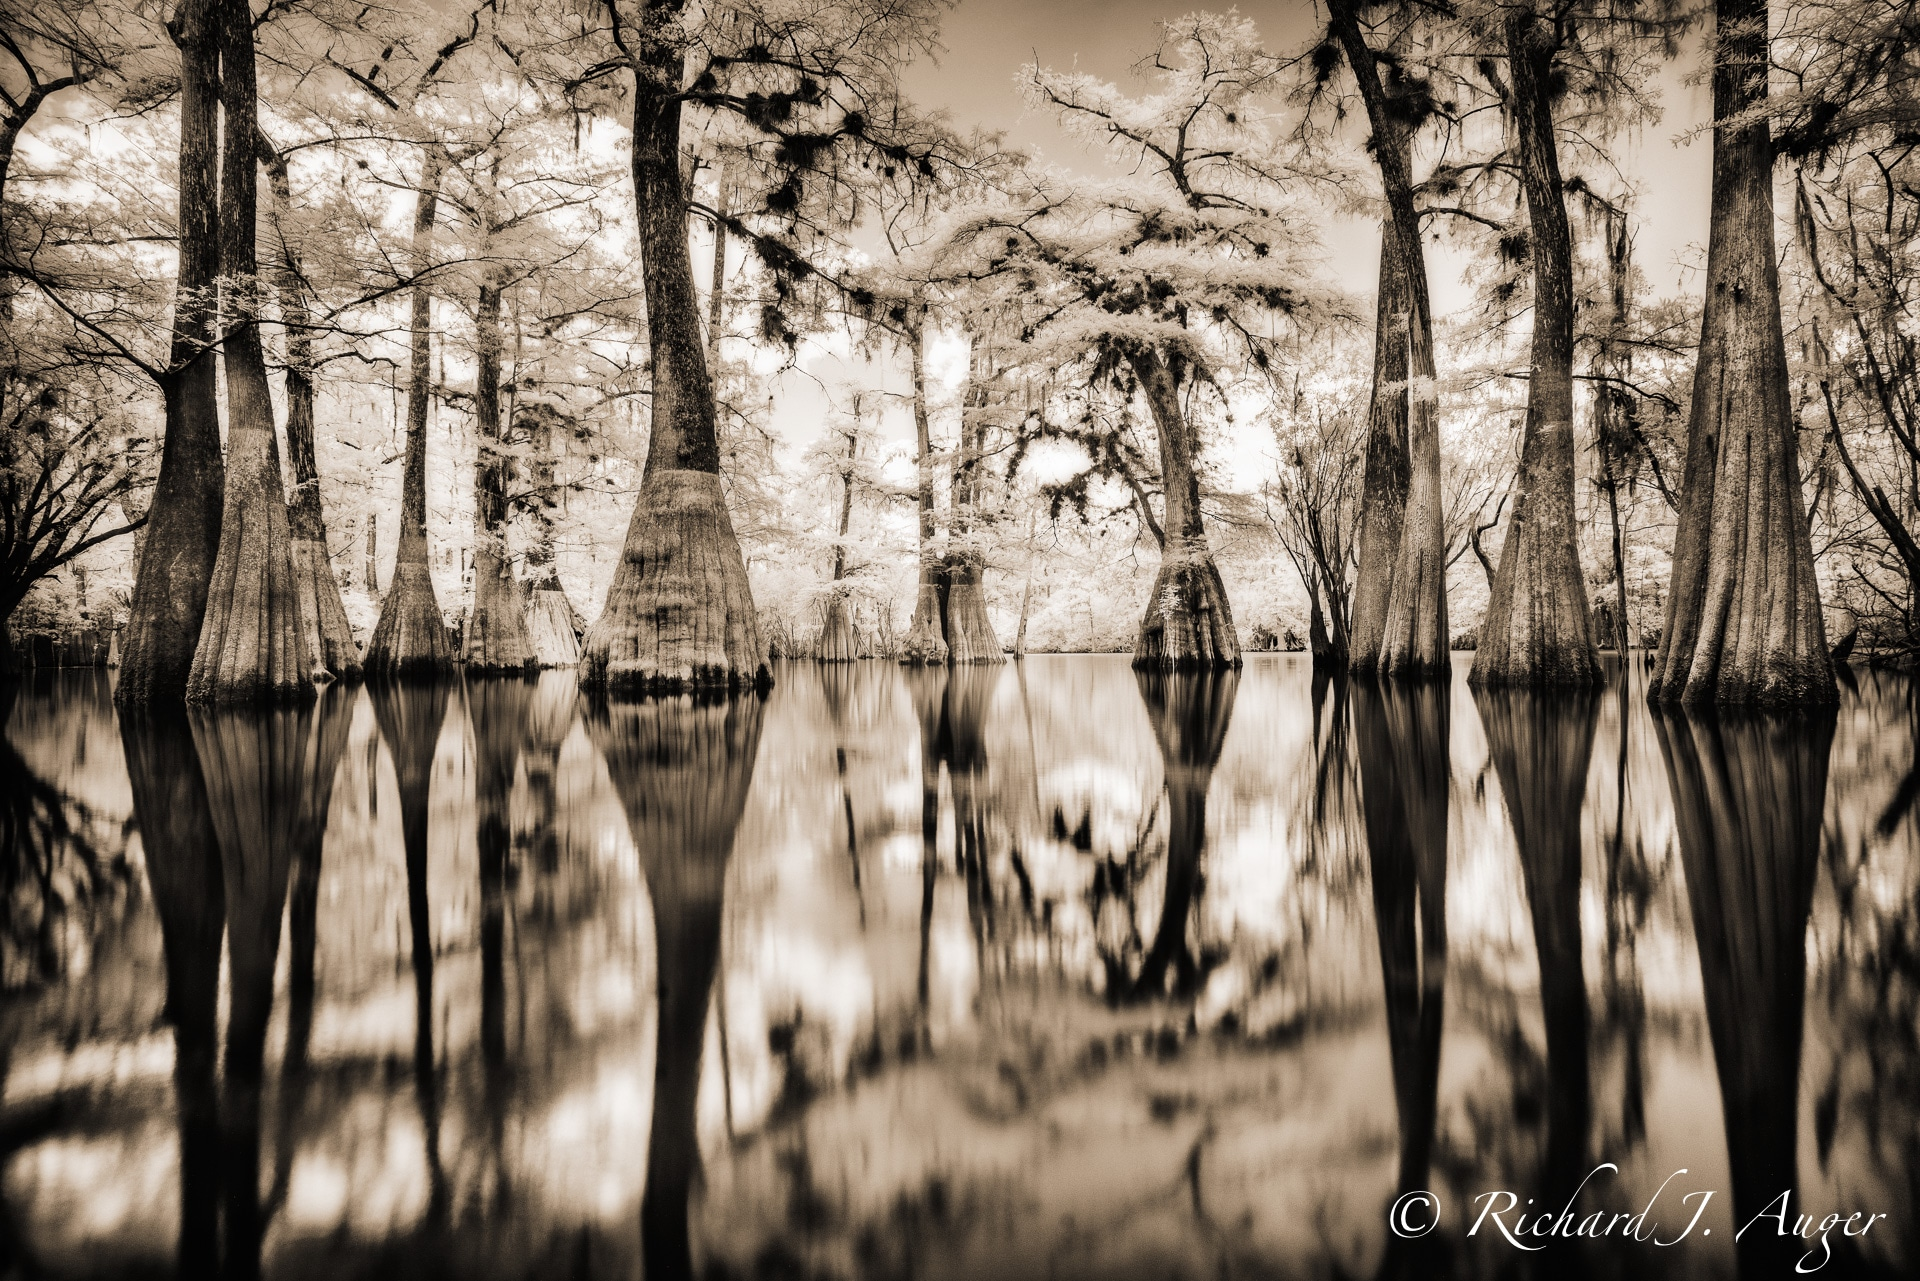 Suwannee River, Florida, Cypress, Swamp, Reflections, Tall, Landscape, water, photograph, sepia tone, black and white